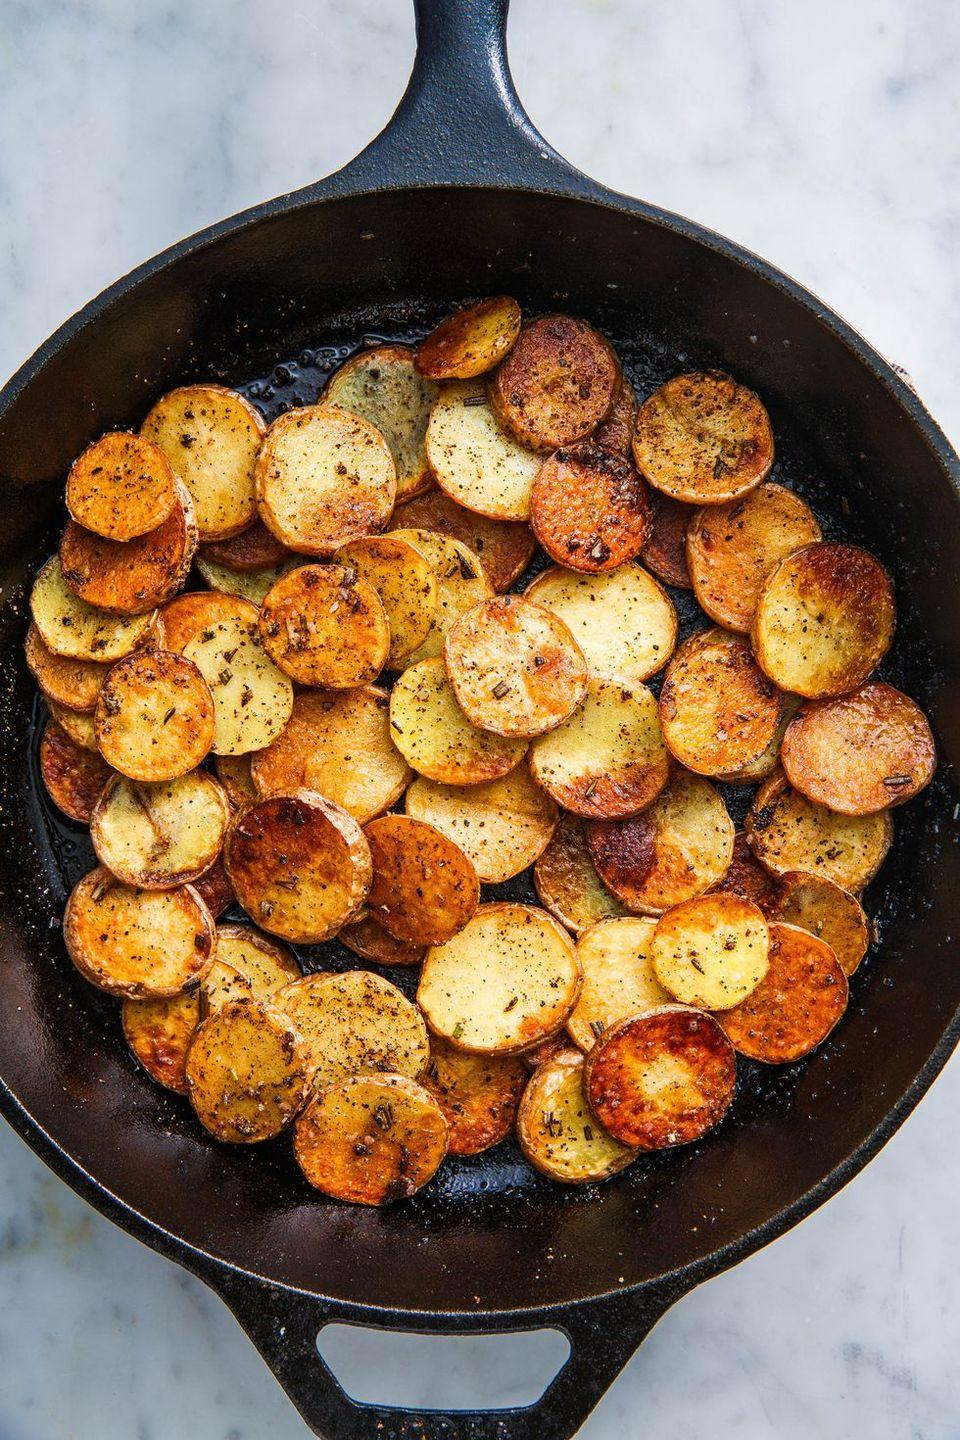 """<p>A lot of pan fried potatoes take wayyy longer than they should. You're first asked to boil the potatoes then chop and fry them. We can hardly think of anything more annoying. Especially if you're feeling lazy, hungover, or rushed—or all of the above. The truth is, you don't need to pre-cook the potatoes at all. You just need to slice 'em thin and choose the best oils...plural!</p><p>Get the <a href=""""https://www.delish.com/uk/cooking/recipes/a28786092/pan-fried-potatoes/"""" rel=""""nofollow noopener"""" target=""""_blank"""" data-ylk=""""slk:Pan Fried Potatoes"""" class=""""link rapid-noclick-resp"""">Pan Fried Potatoes</a> recipe.</p>"""